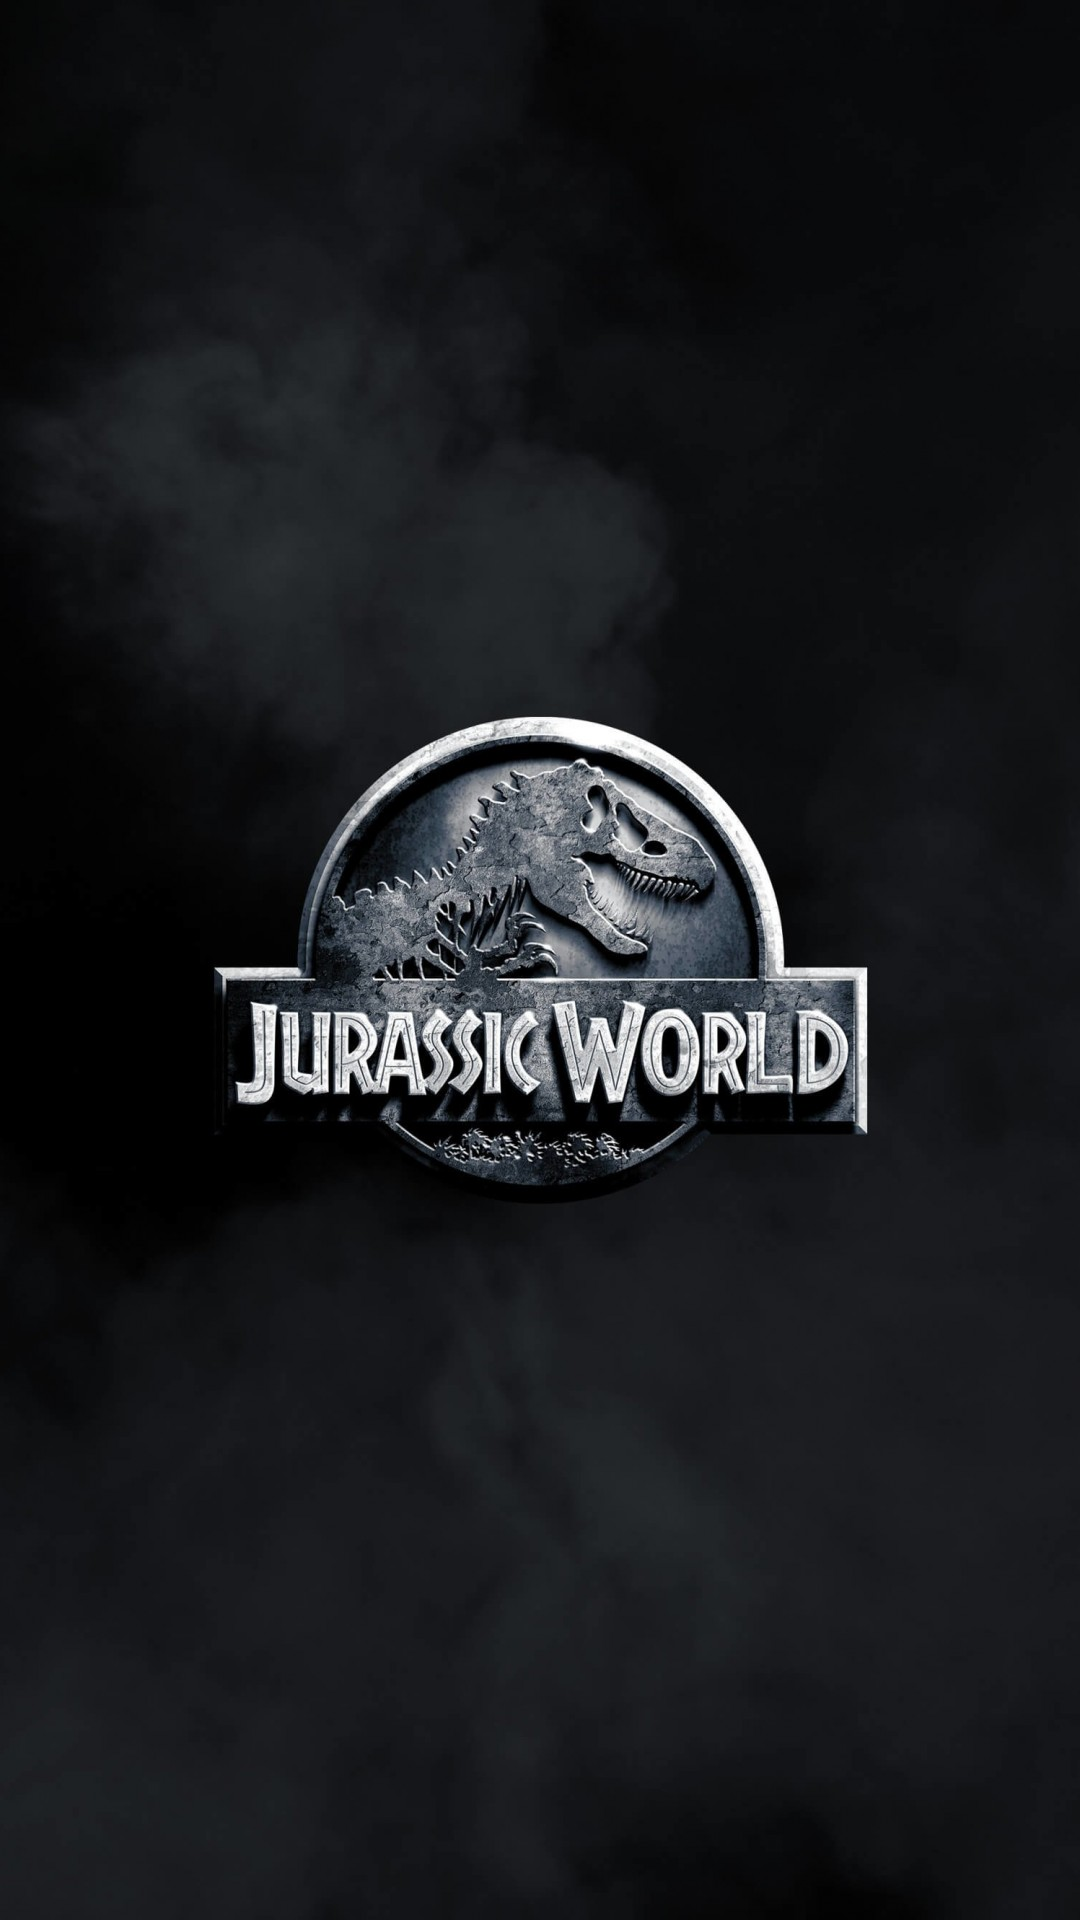 Jurassic World Wallpaper for LG G2